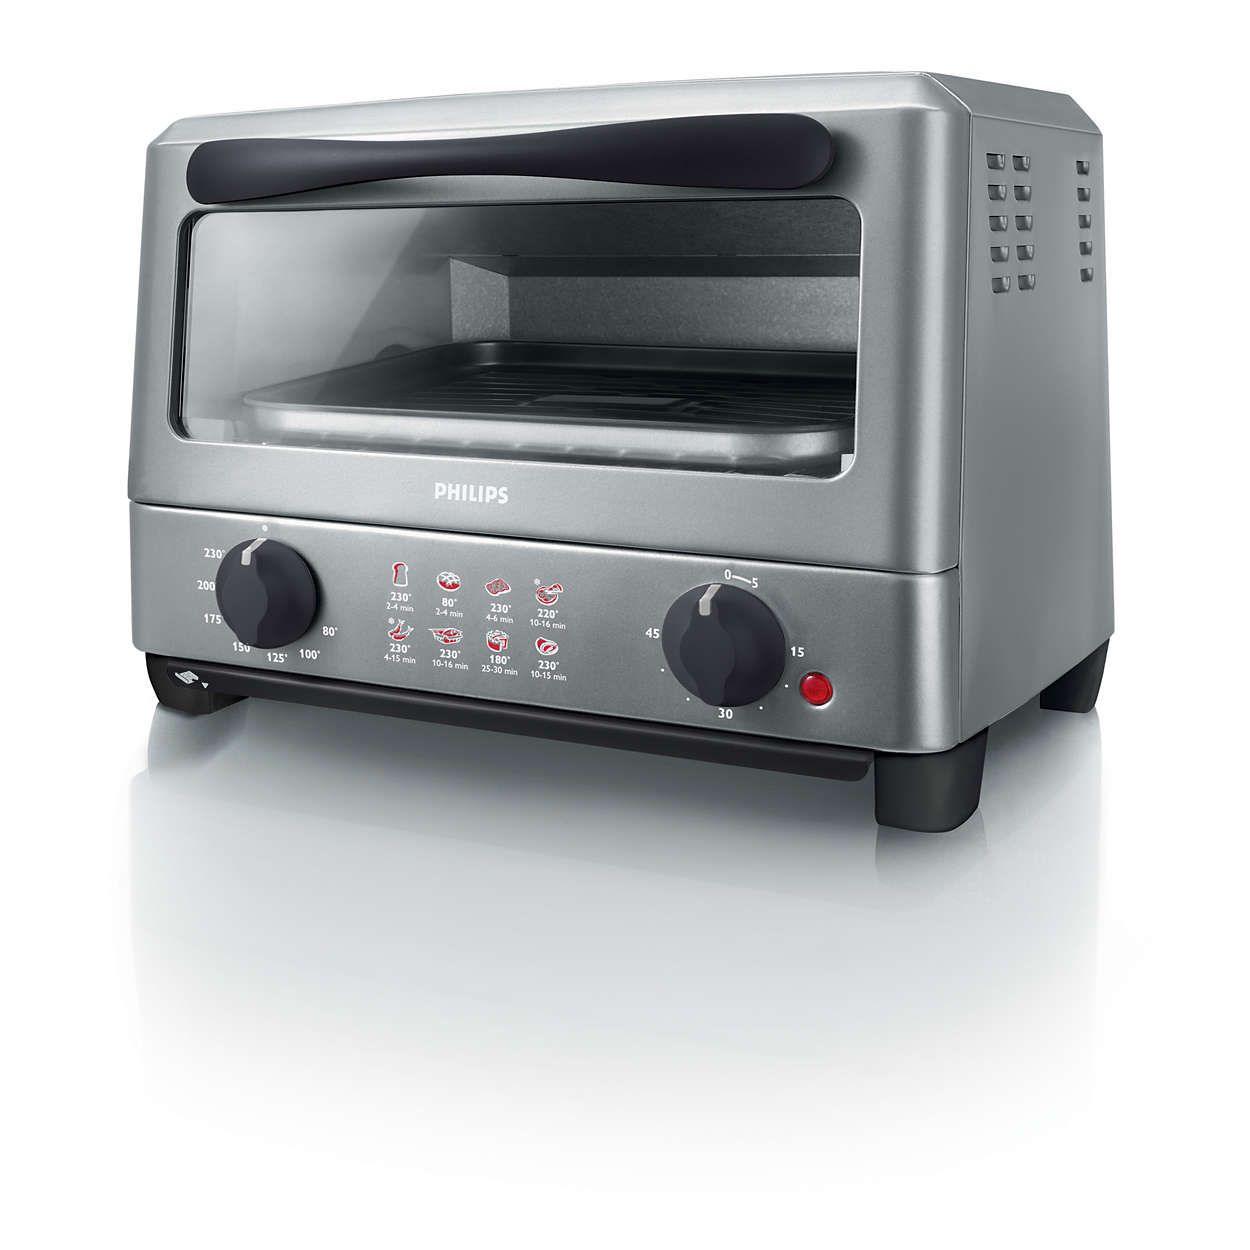 Philips Microwave Oven: Oven, Microwave Oven, Philips